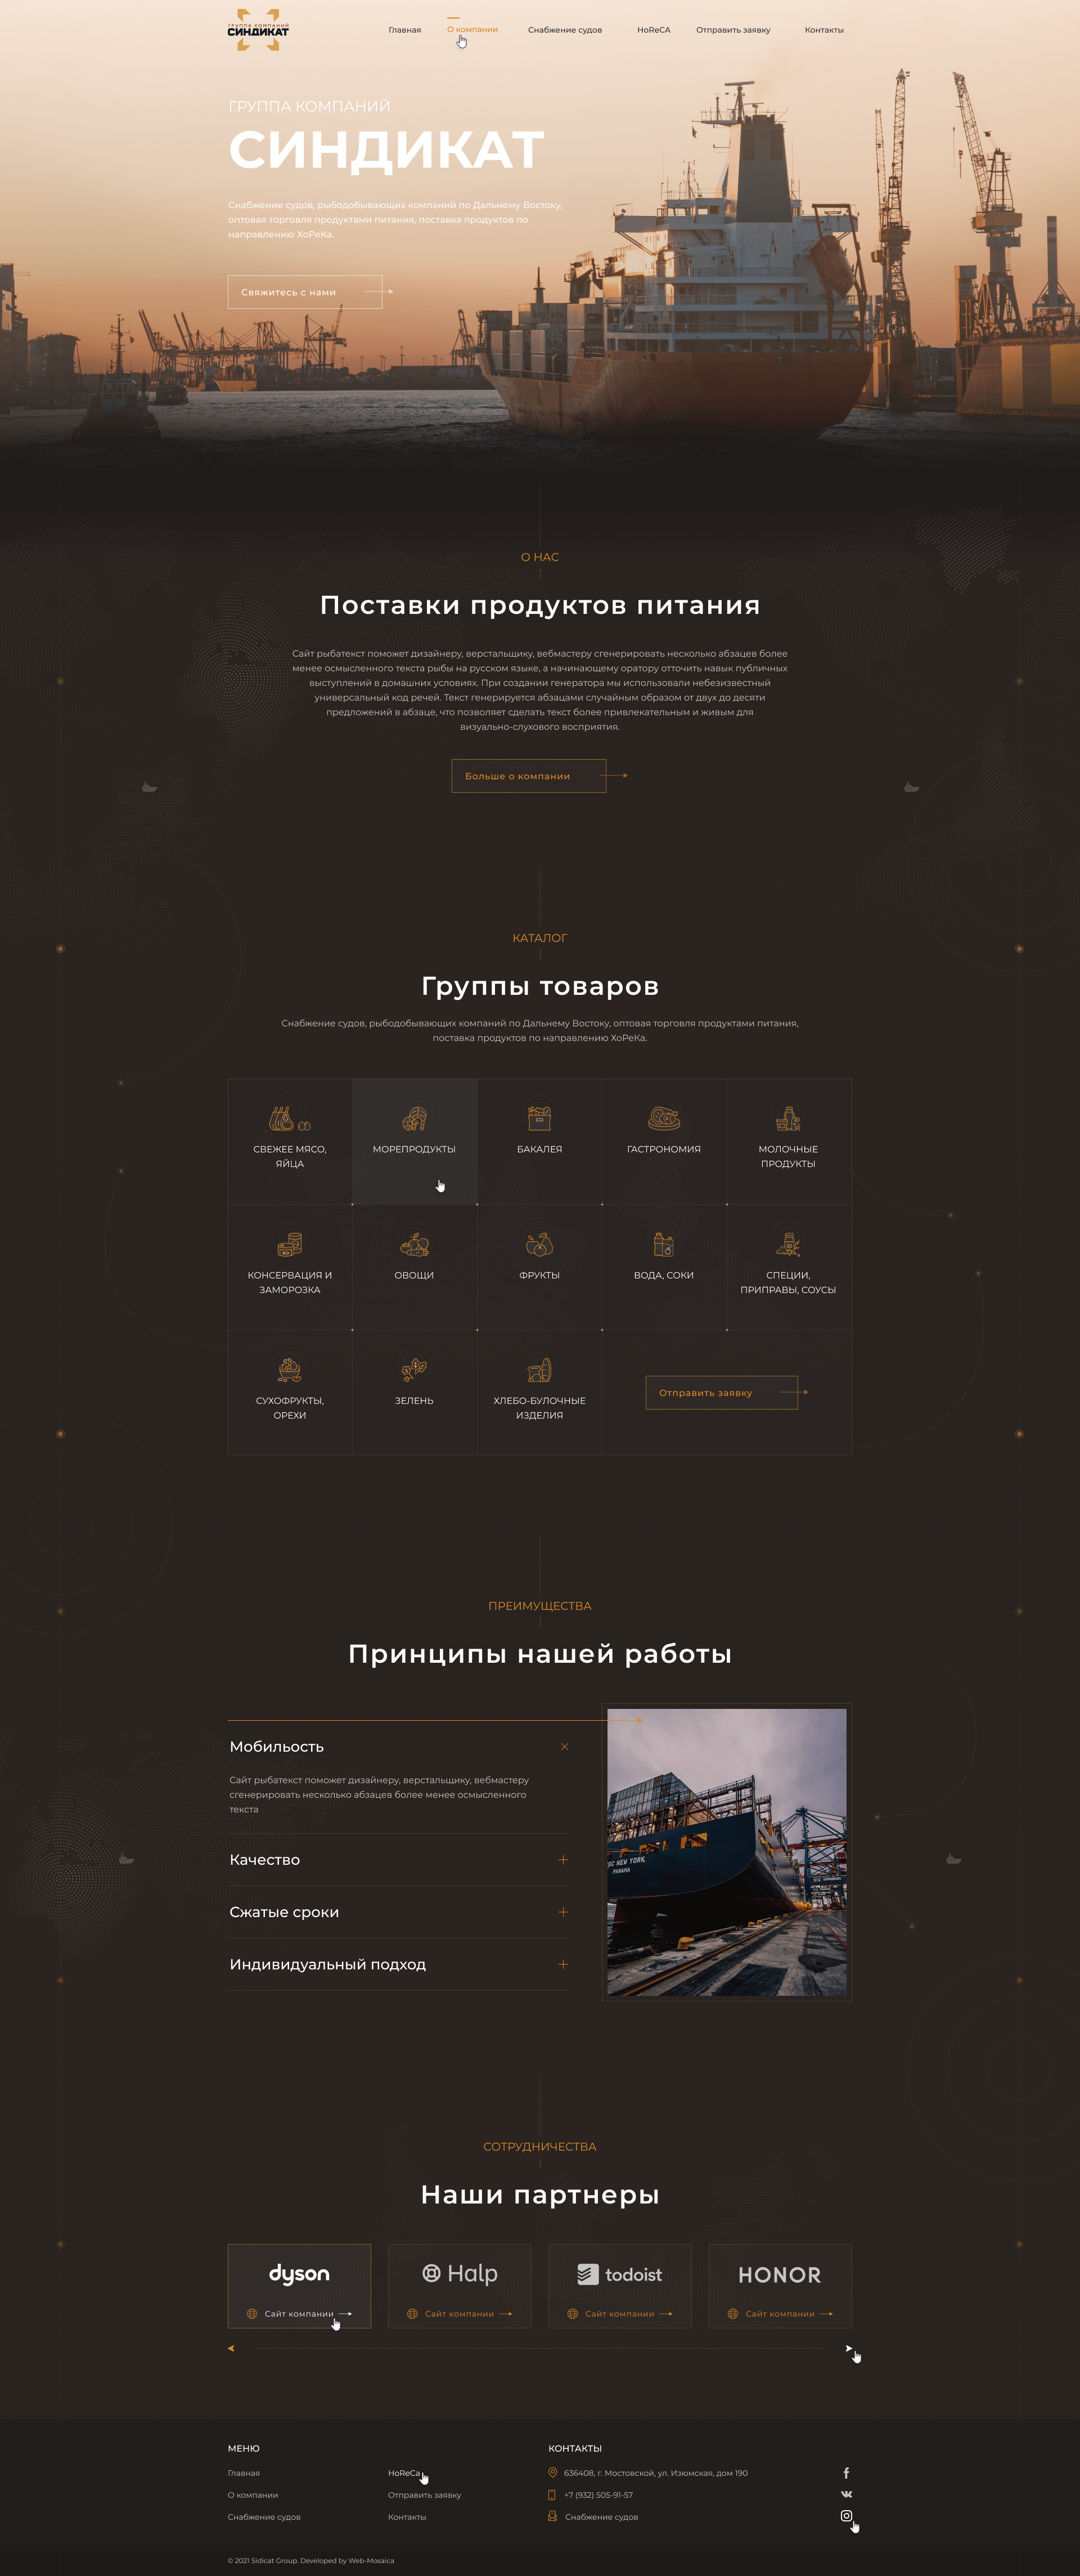 Syndicate_01_Home_1.0